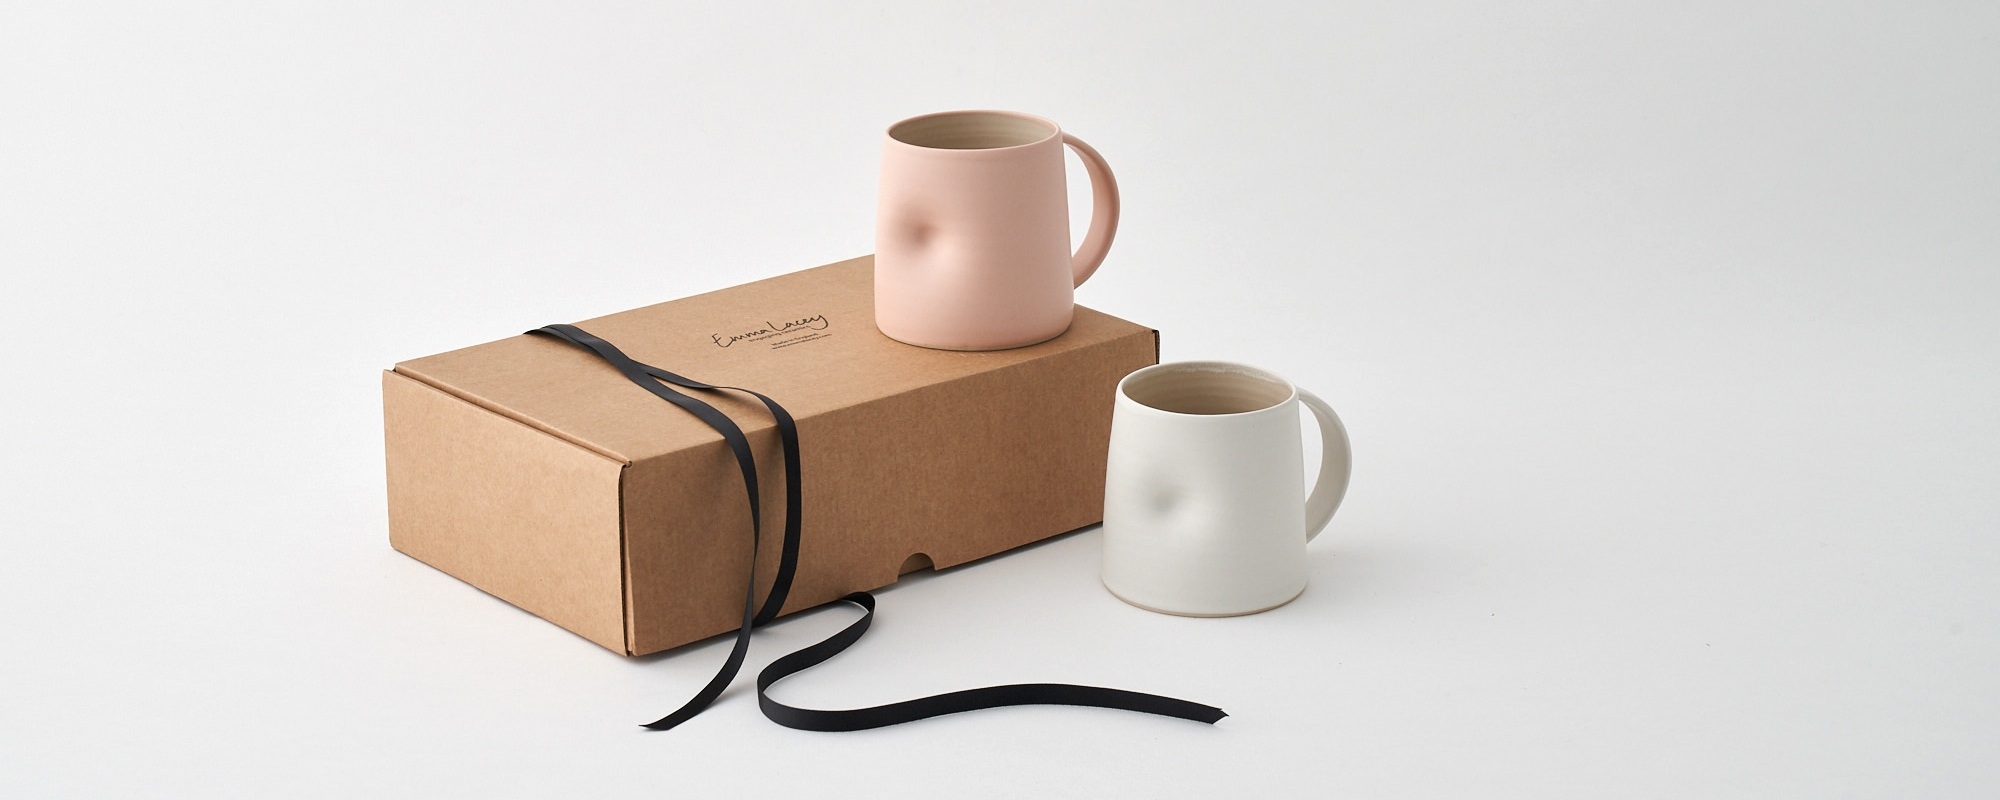 Everyday Large Mugs - An ideal set to enjoy your brew with Emma'ssignature hand thrown and dented mug.£65.00